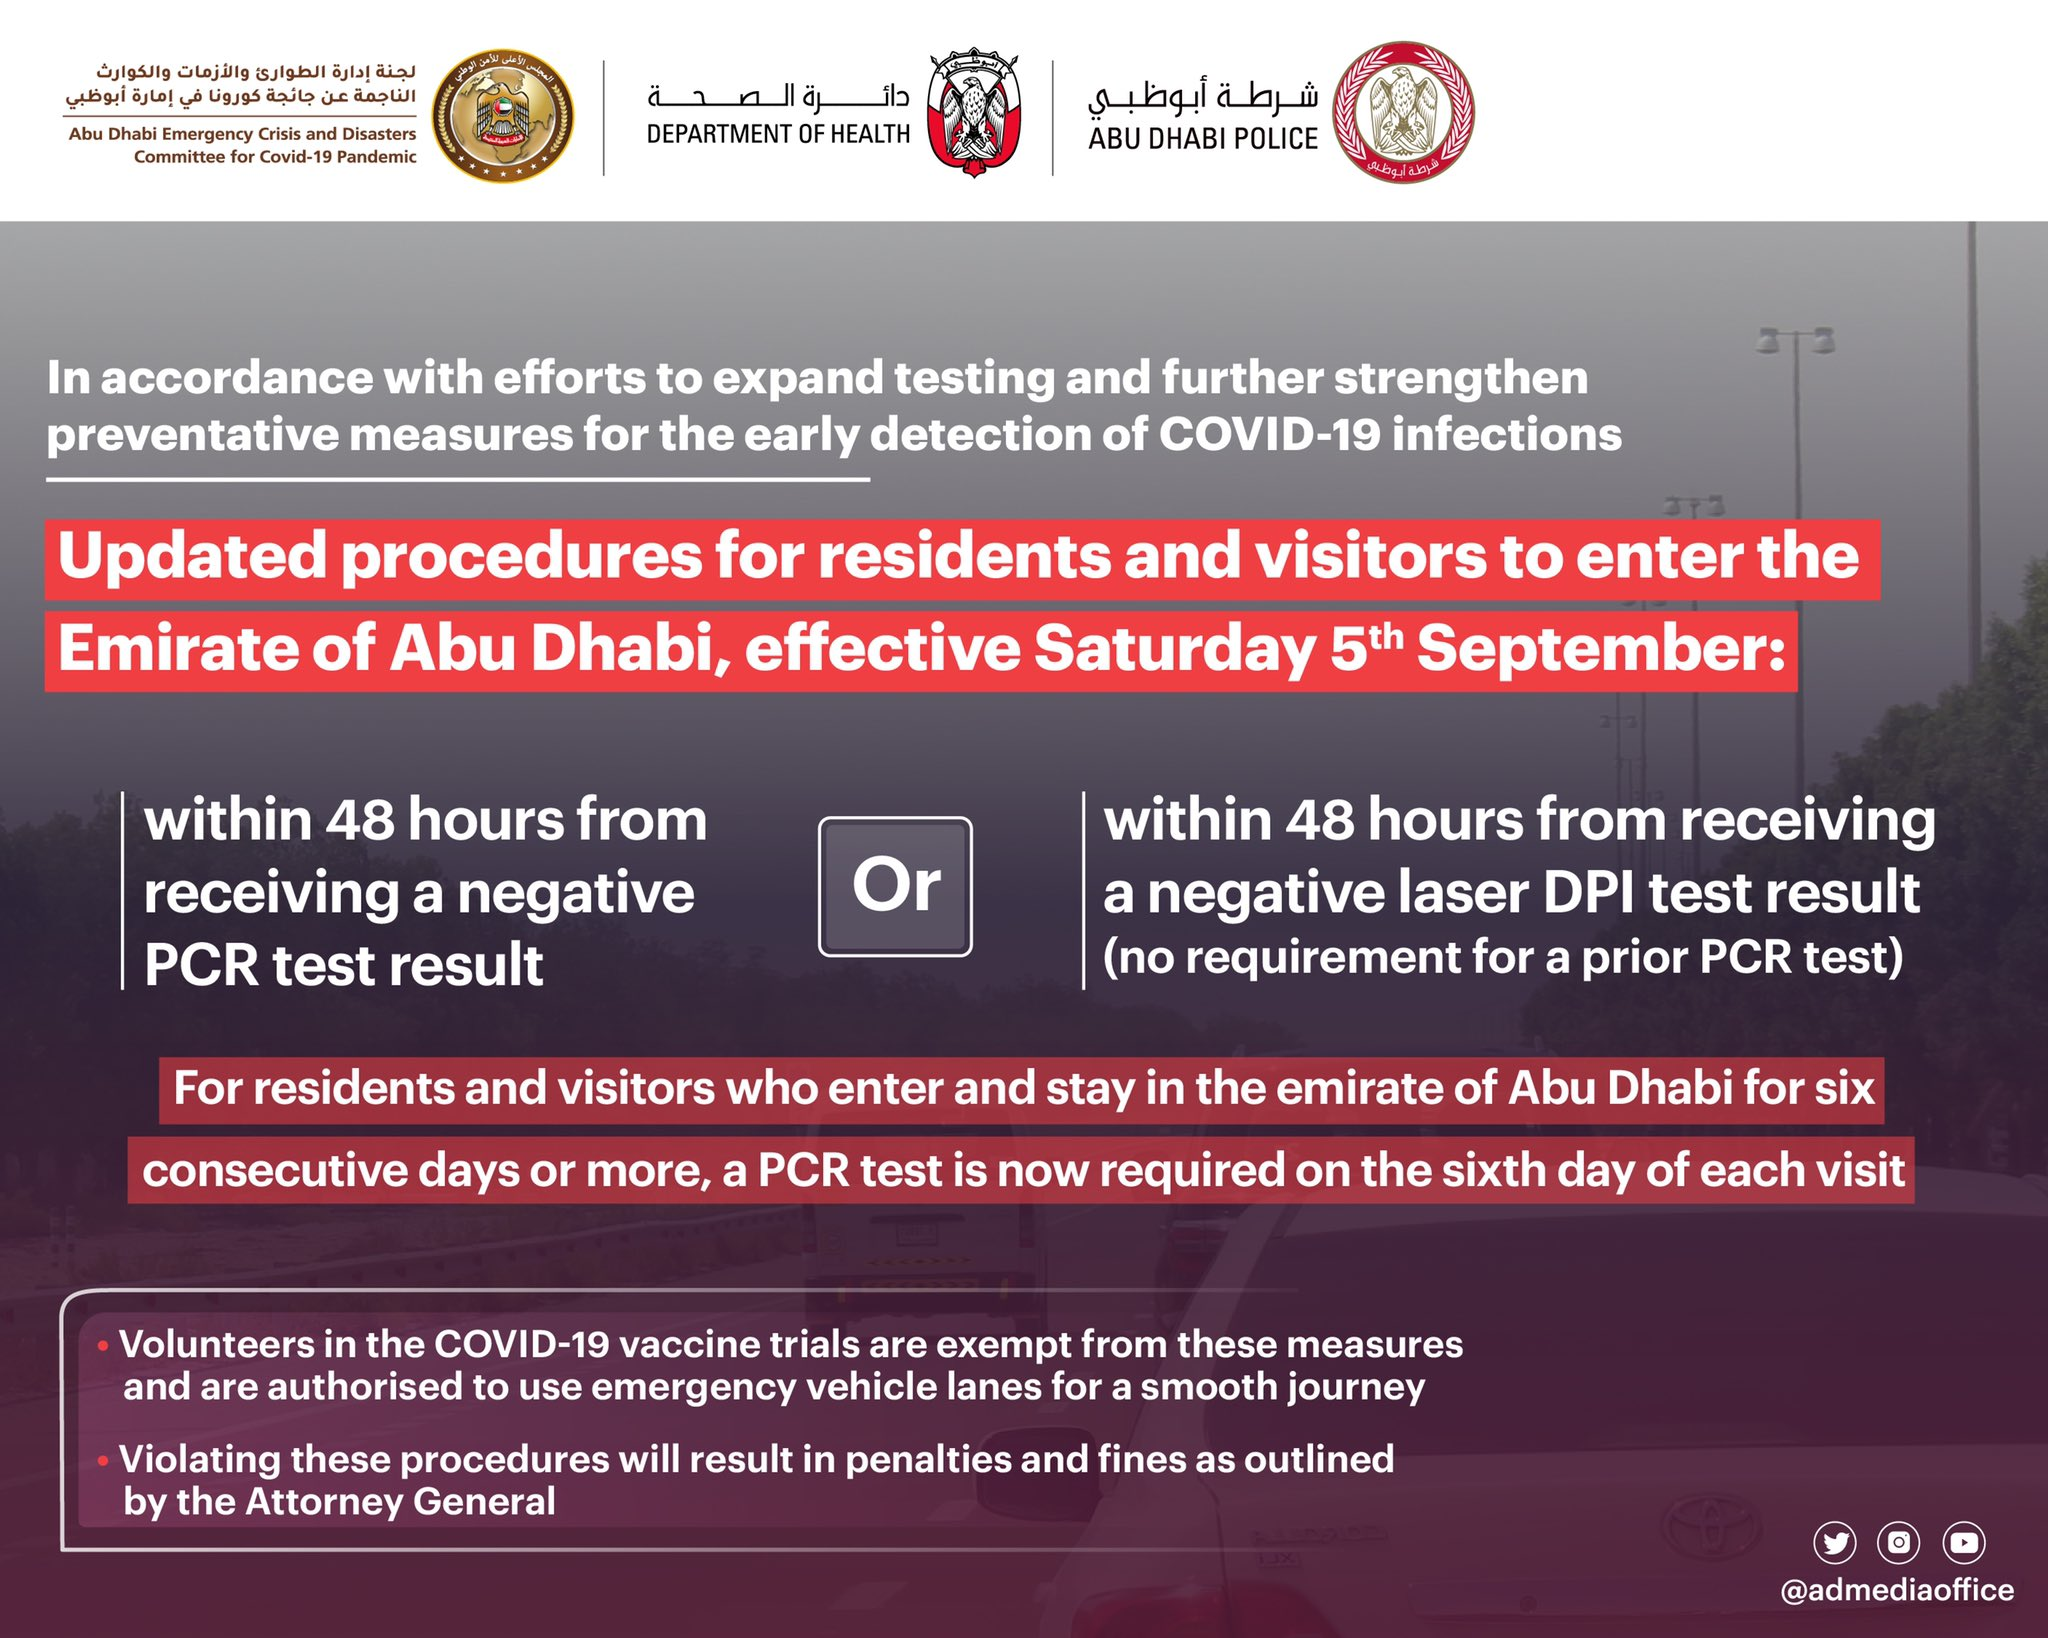 Abu Dhabi Bares New Guidelines for Entry Starting Sept 5